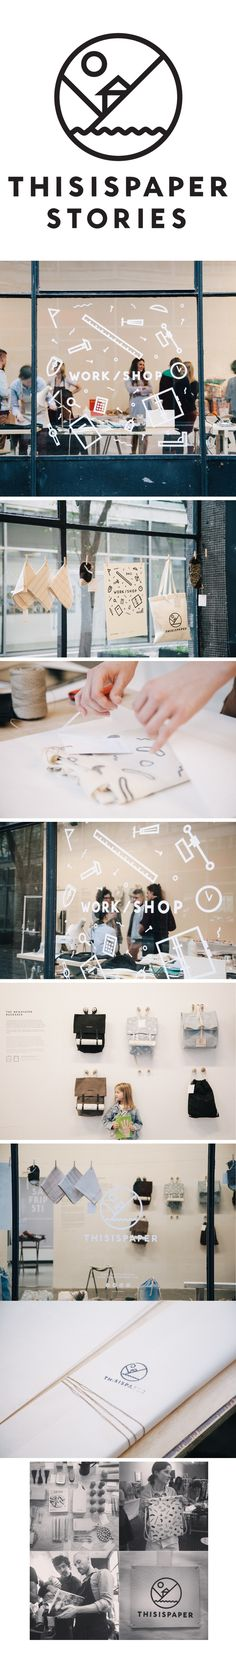 THISISPAPER WORK/SHOP at MOMA Warsaw - Thisispaper Stories